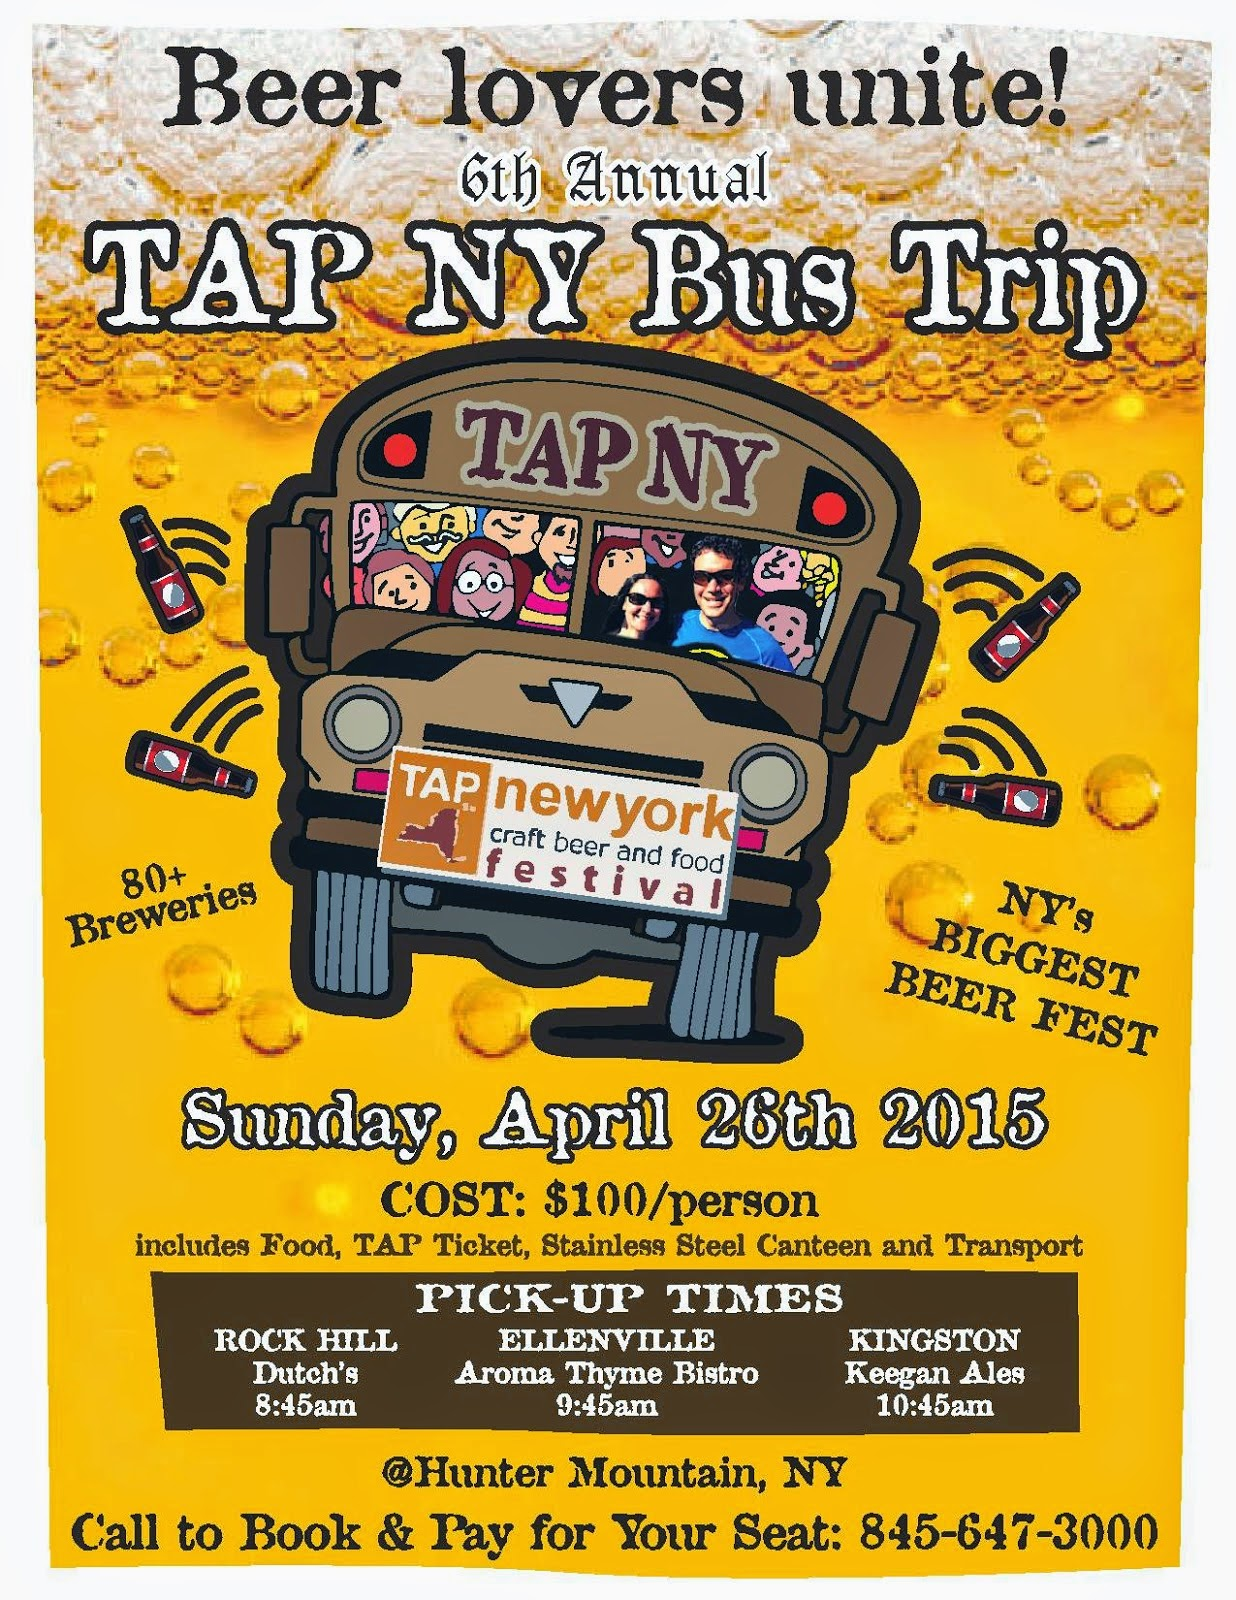 6th Annual TAP NY bus trip from Aroma Thyme | Sunday, April 26th 2015